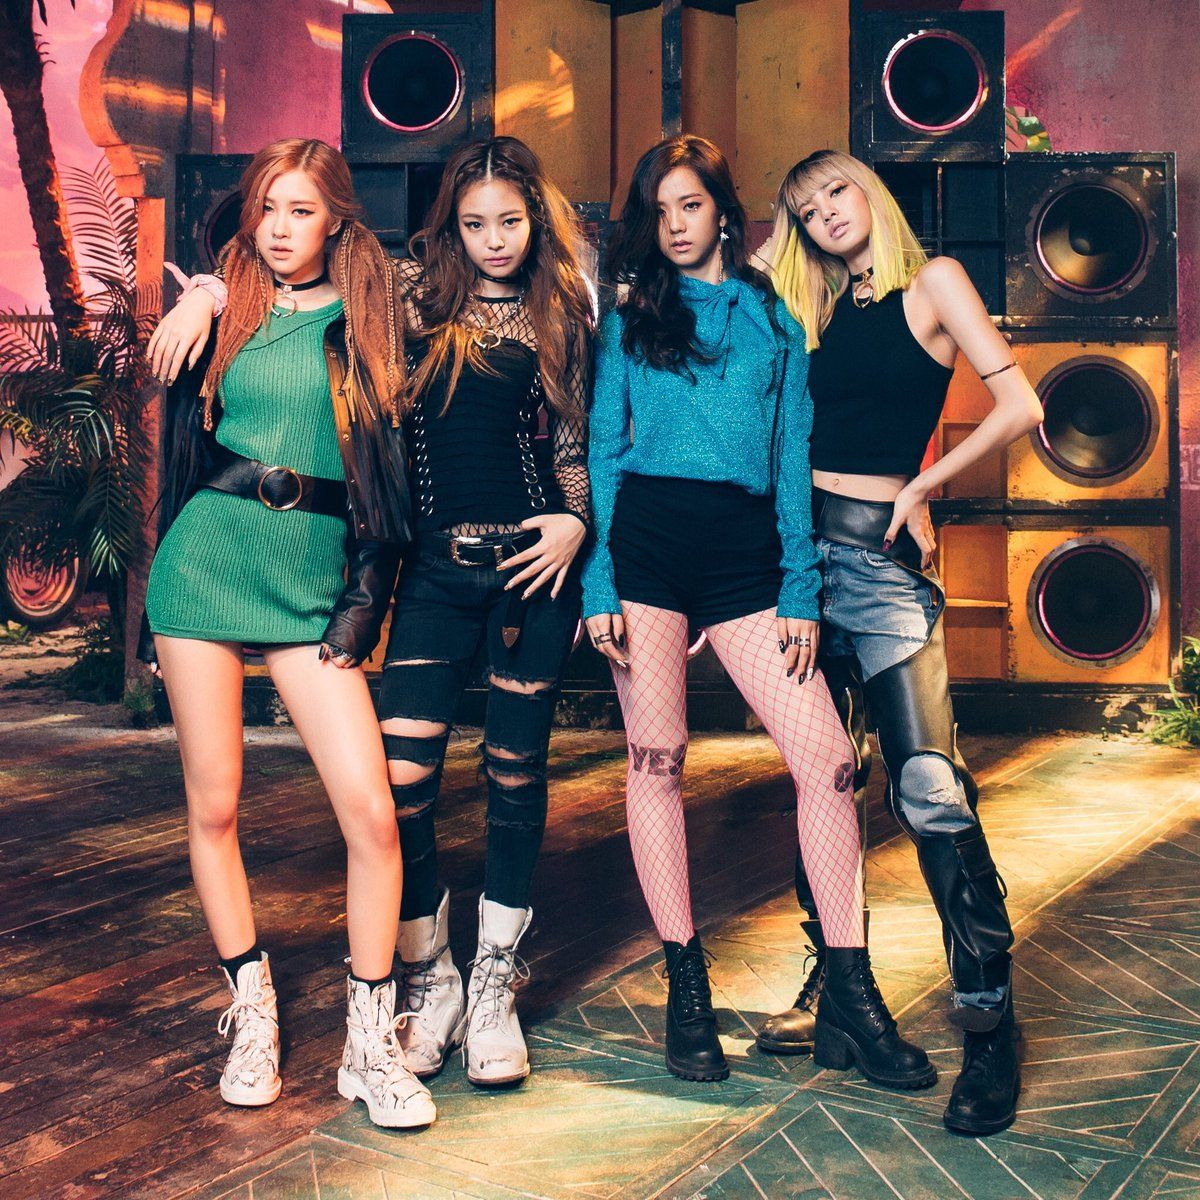 The Best Looking Idol Managers And A Full Pack Blog Of K Pop News Black Pink Black Pink Kpop Blackpink Fashion